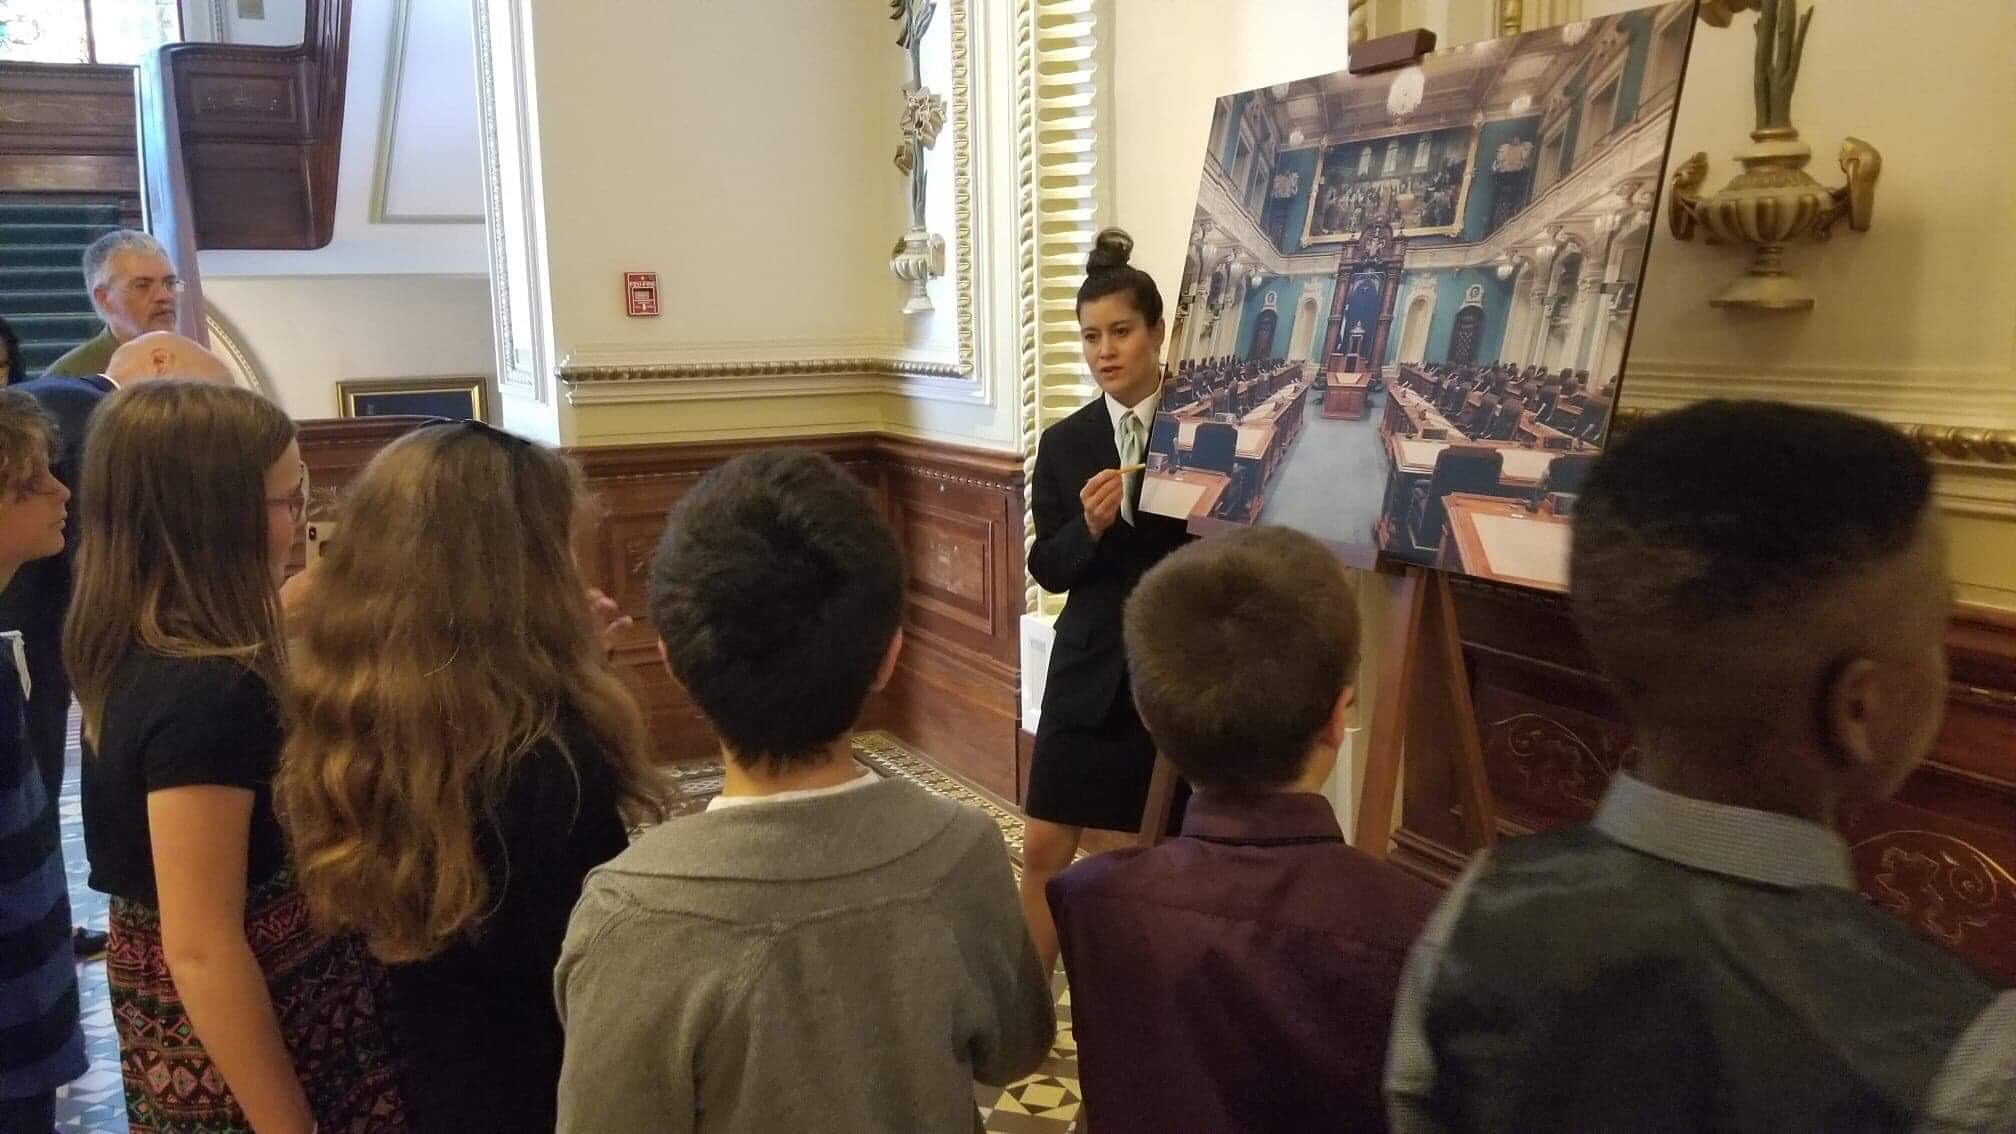 Visite guidée à l'Assemblée nationale.